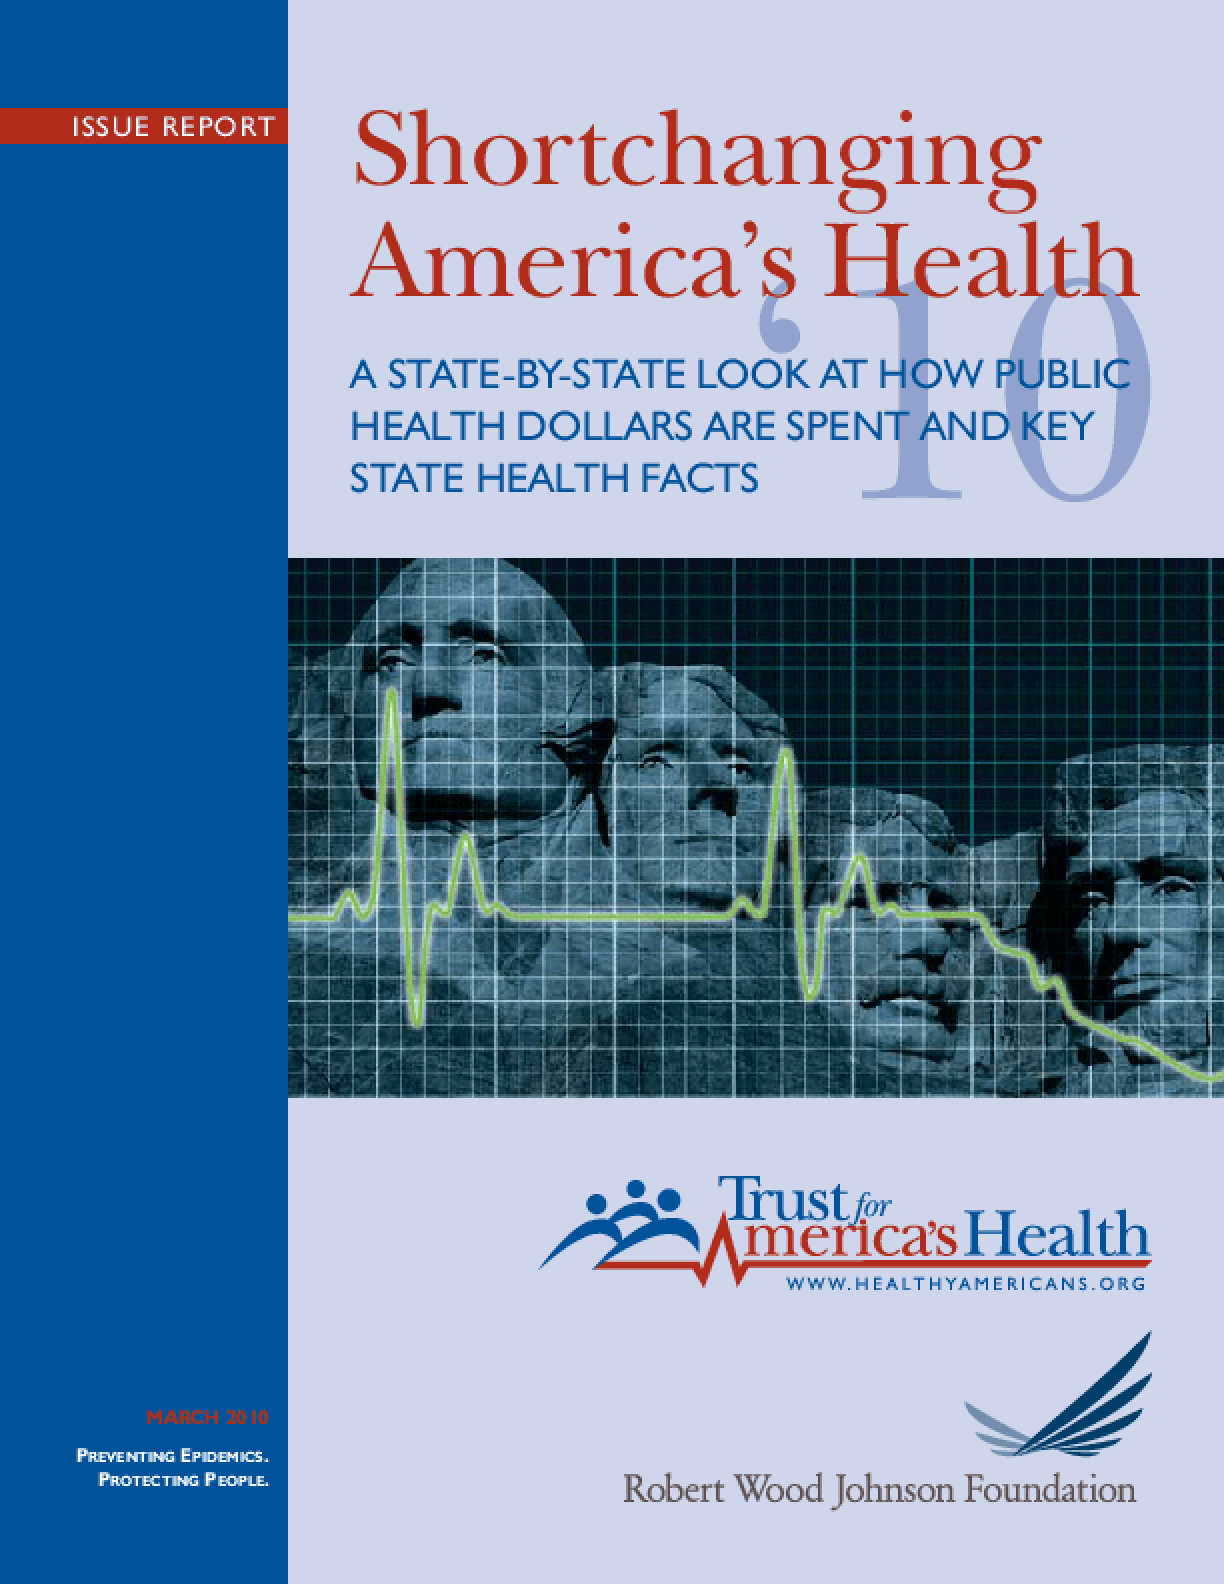 Shortchanging America's Health: A State-by-State Look at How Federal Public Health Dollars Are Spent